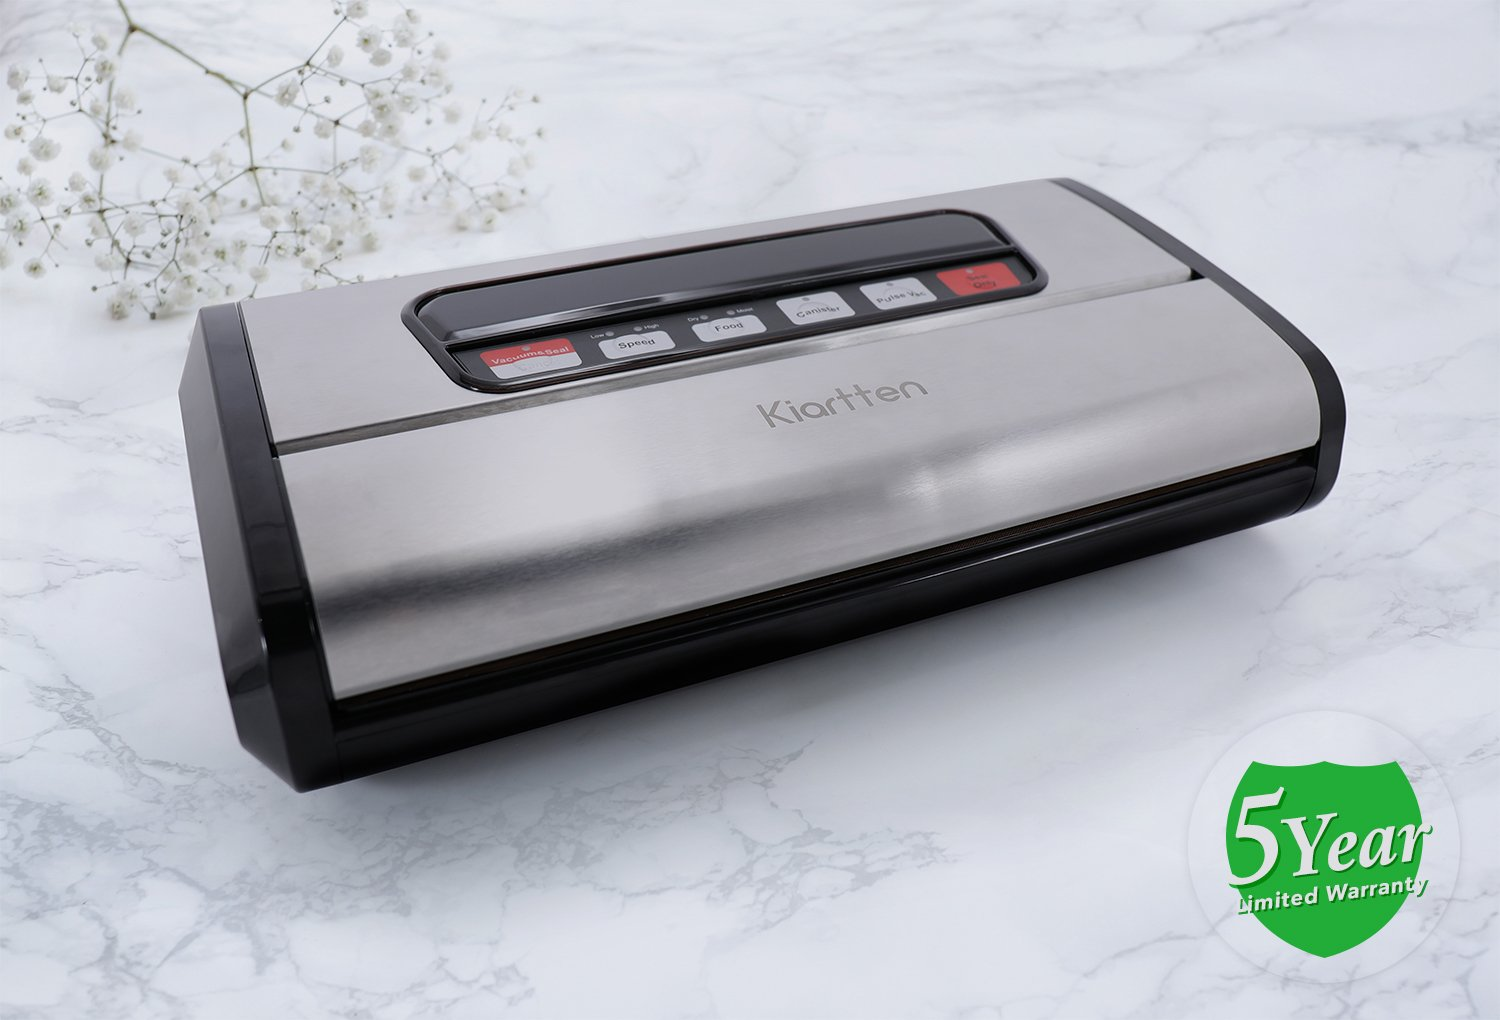 Kiartten Vacuum Sealer, A Fresh Food Locker for Your Kitchen. Keeps Food Fresh Up To 5X Longer. (Stainless Steel) by Spreaze (Image #2)